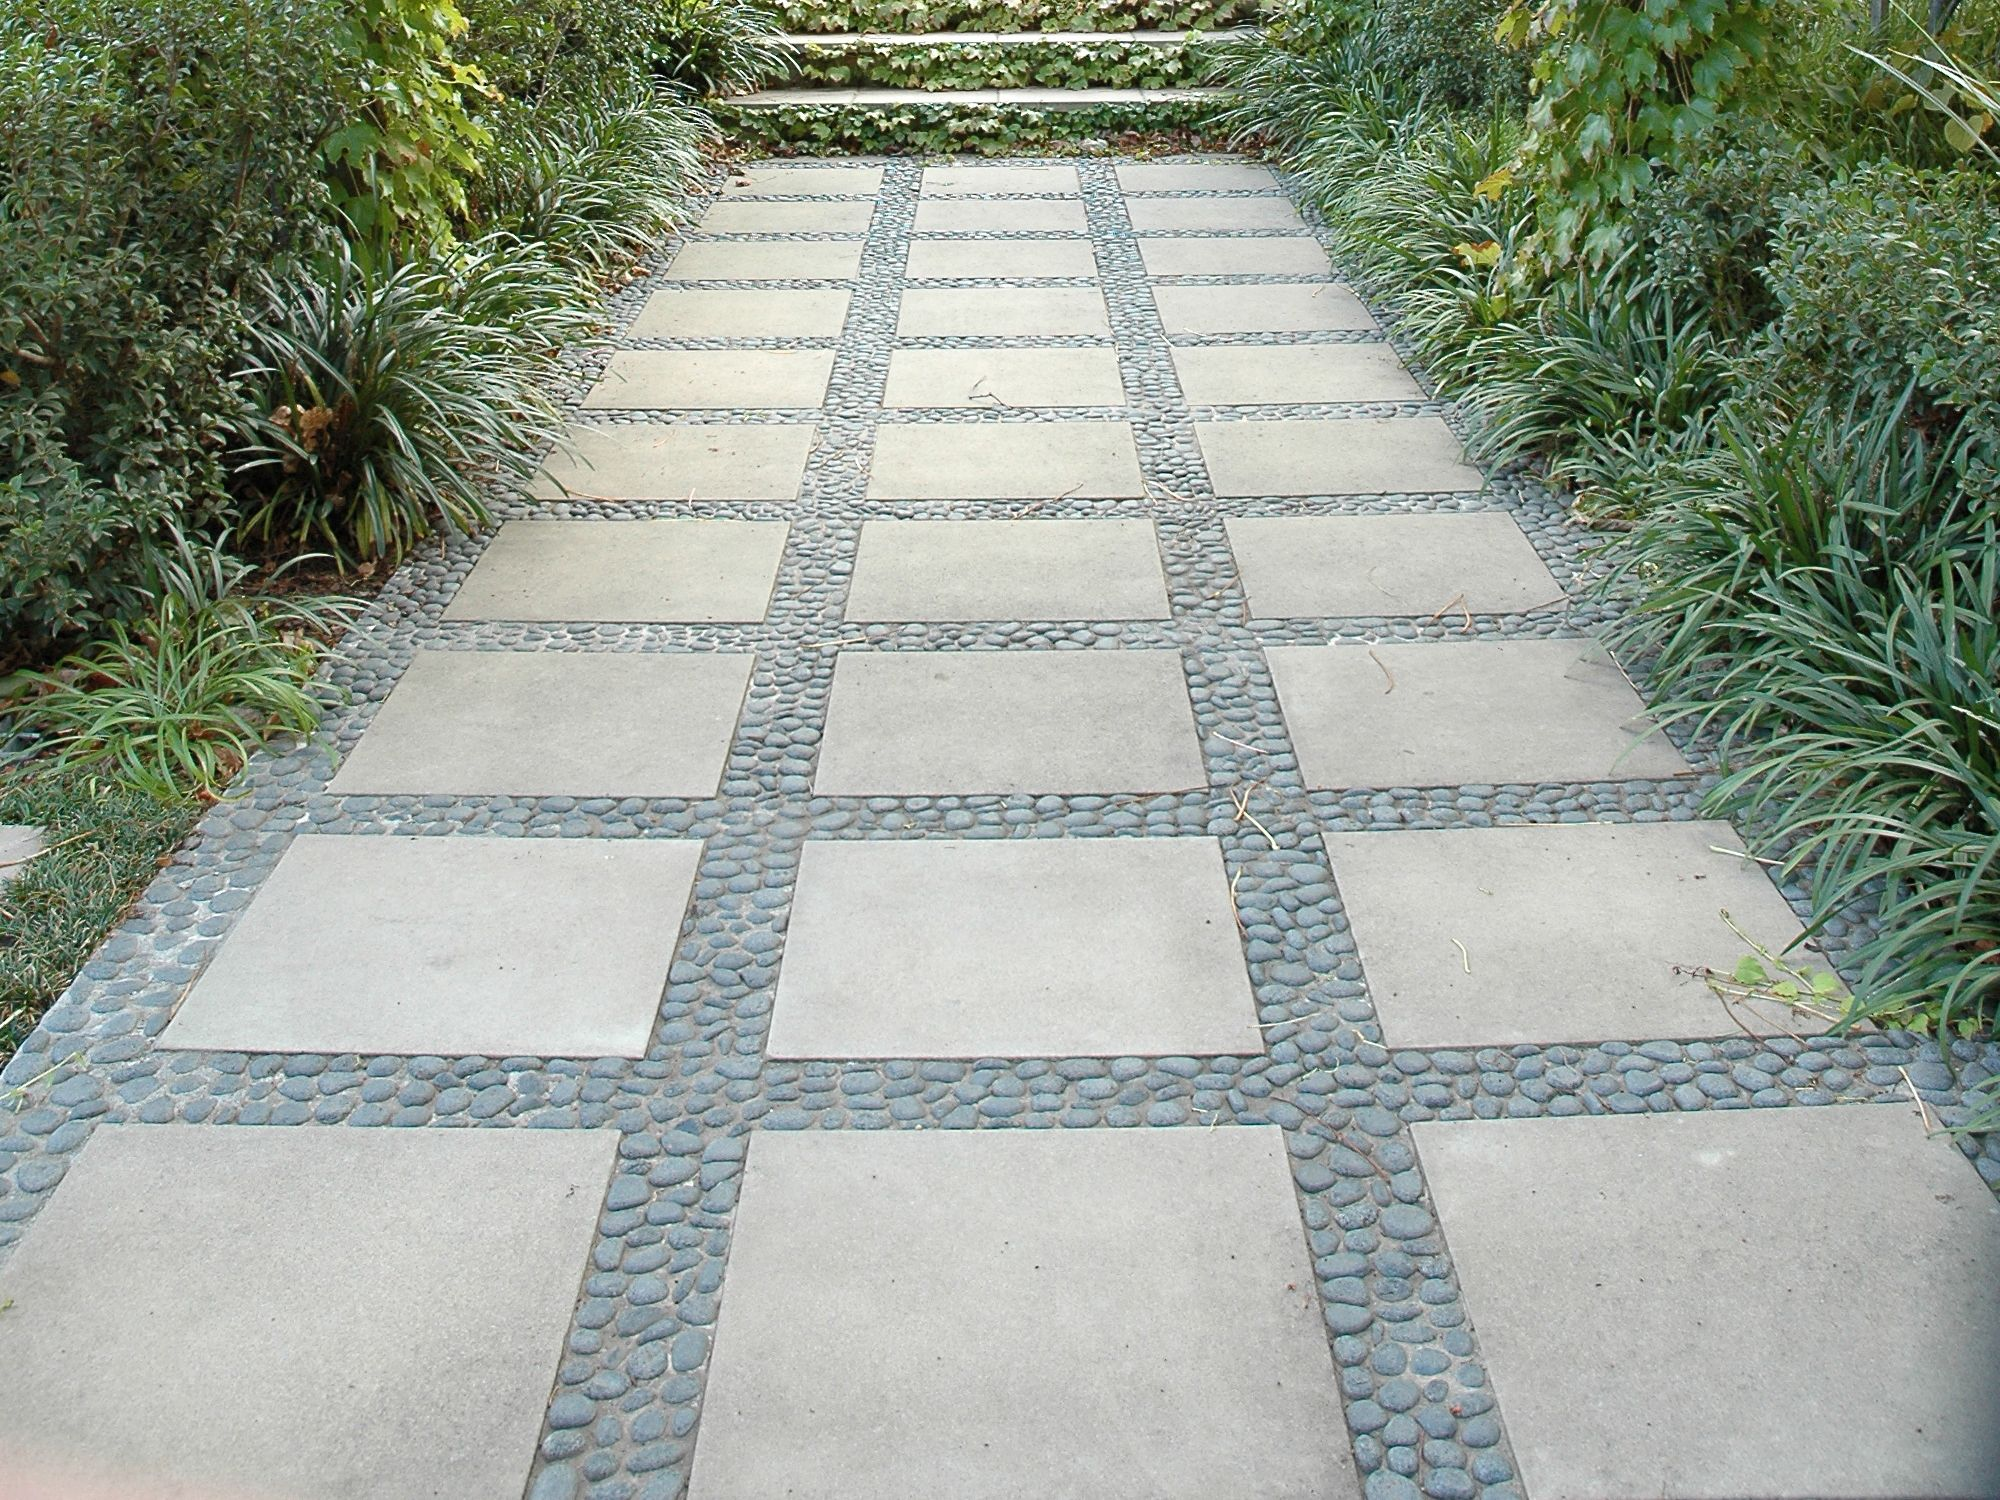 Eco Outdoor Anvil Pebbles Laid With Taupe Concrete Pavers Eckersley Garden Architecture Eco Outdoor Outdoor Paving Natural Stone Flooring Outdoor Flooring